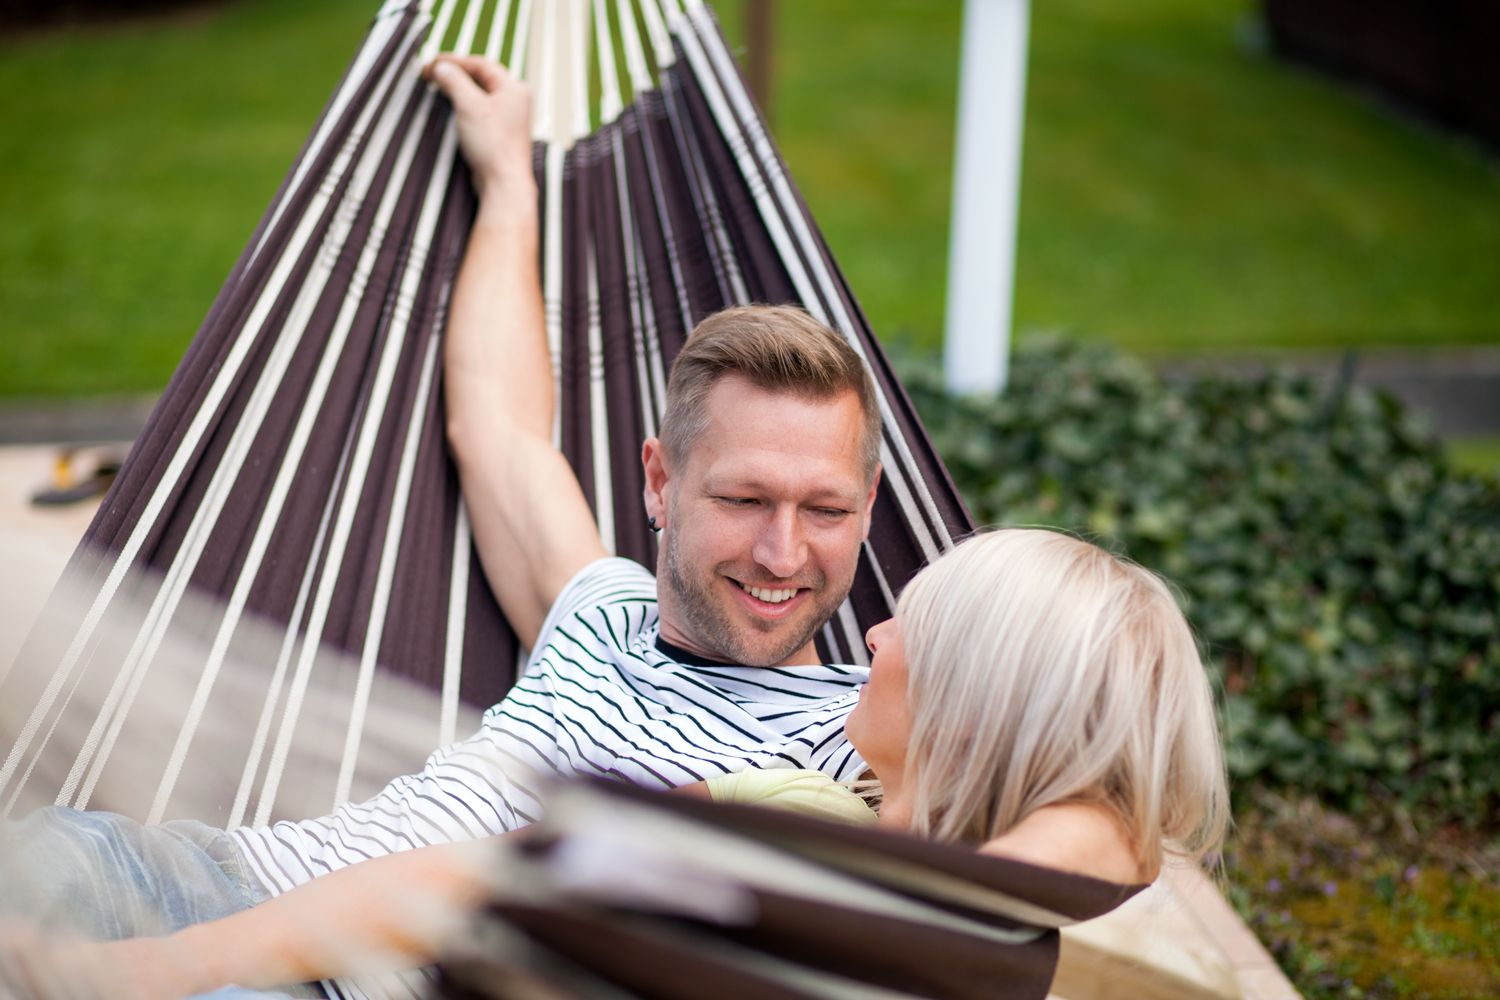 Medium image of amazonas barbados mocca  hammock  garden  sweet  fun